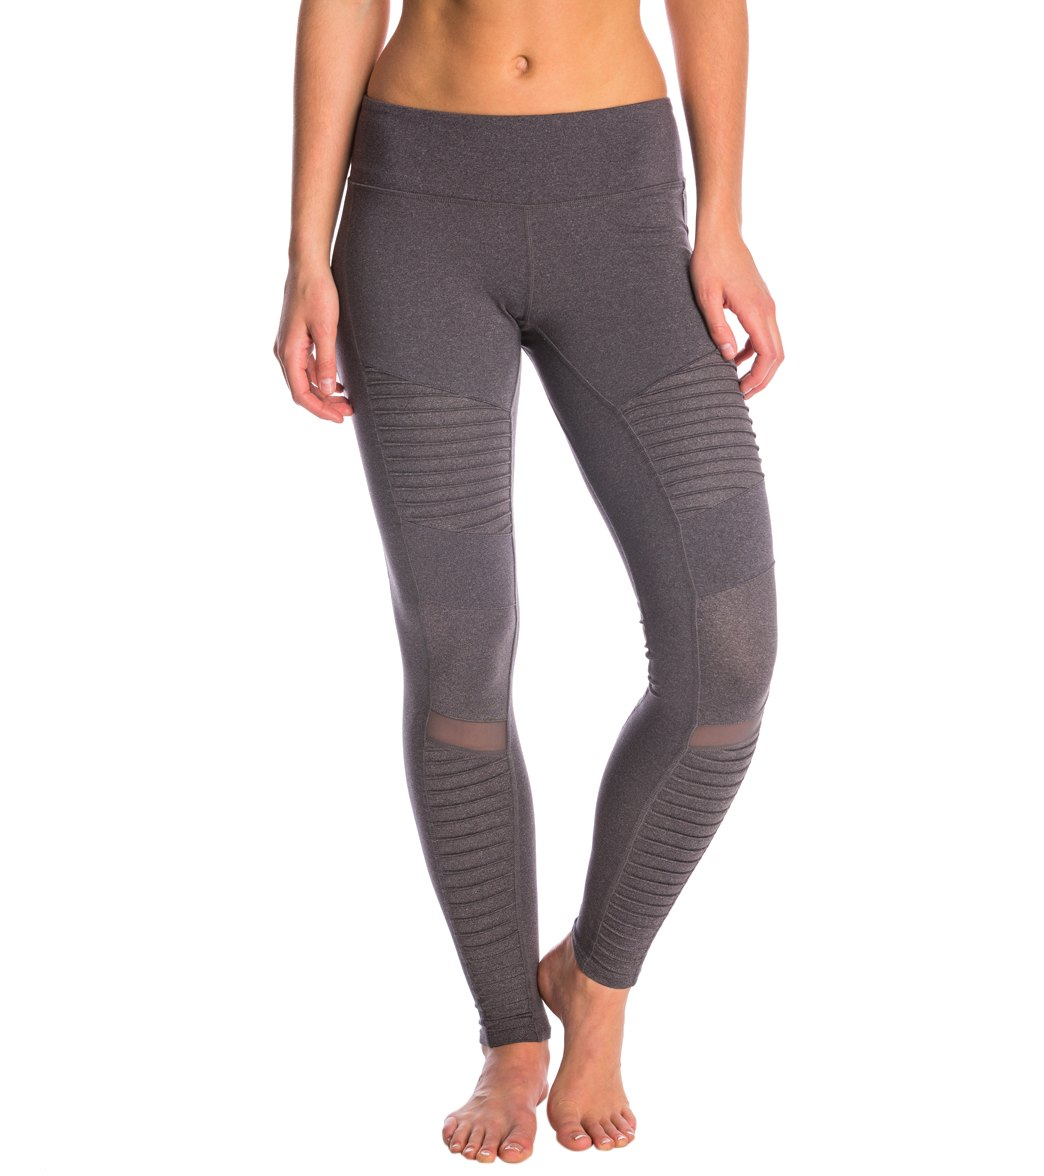 f53b22e5f47dab Alo Yoga Athena Moto Yoga Leggings at SwimOutlet.com - Free Shipping